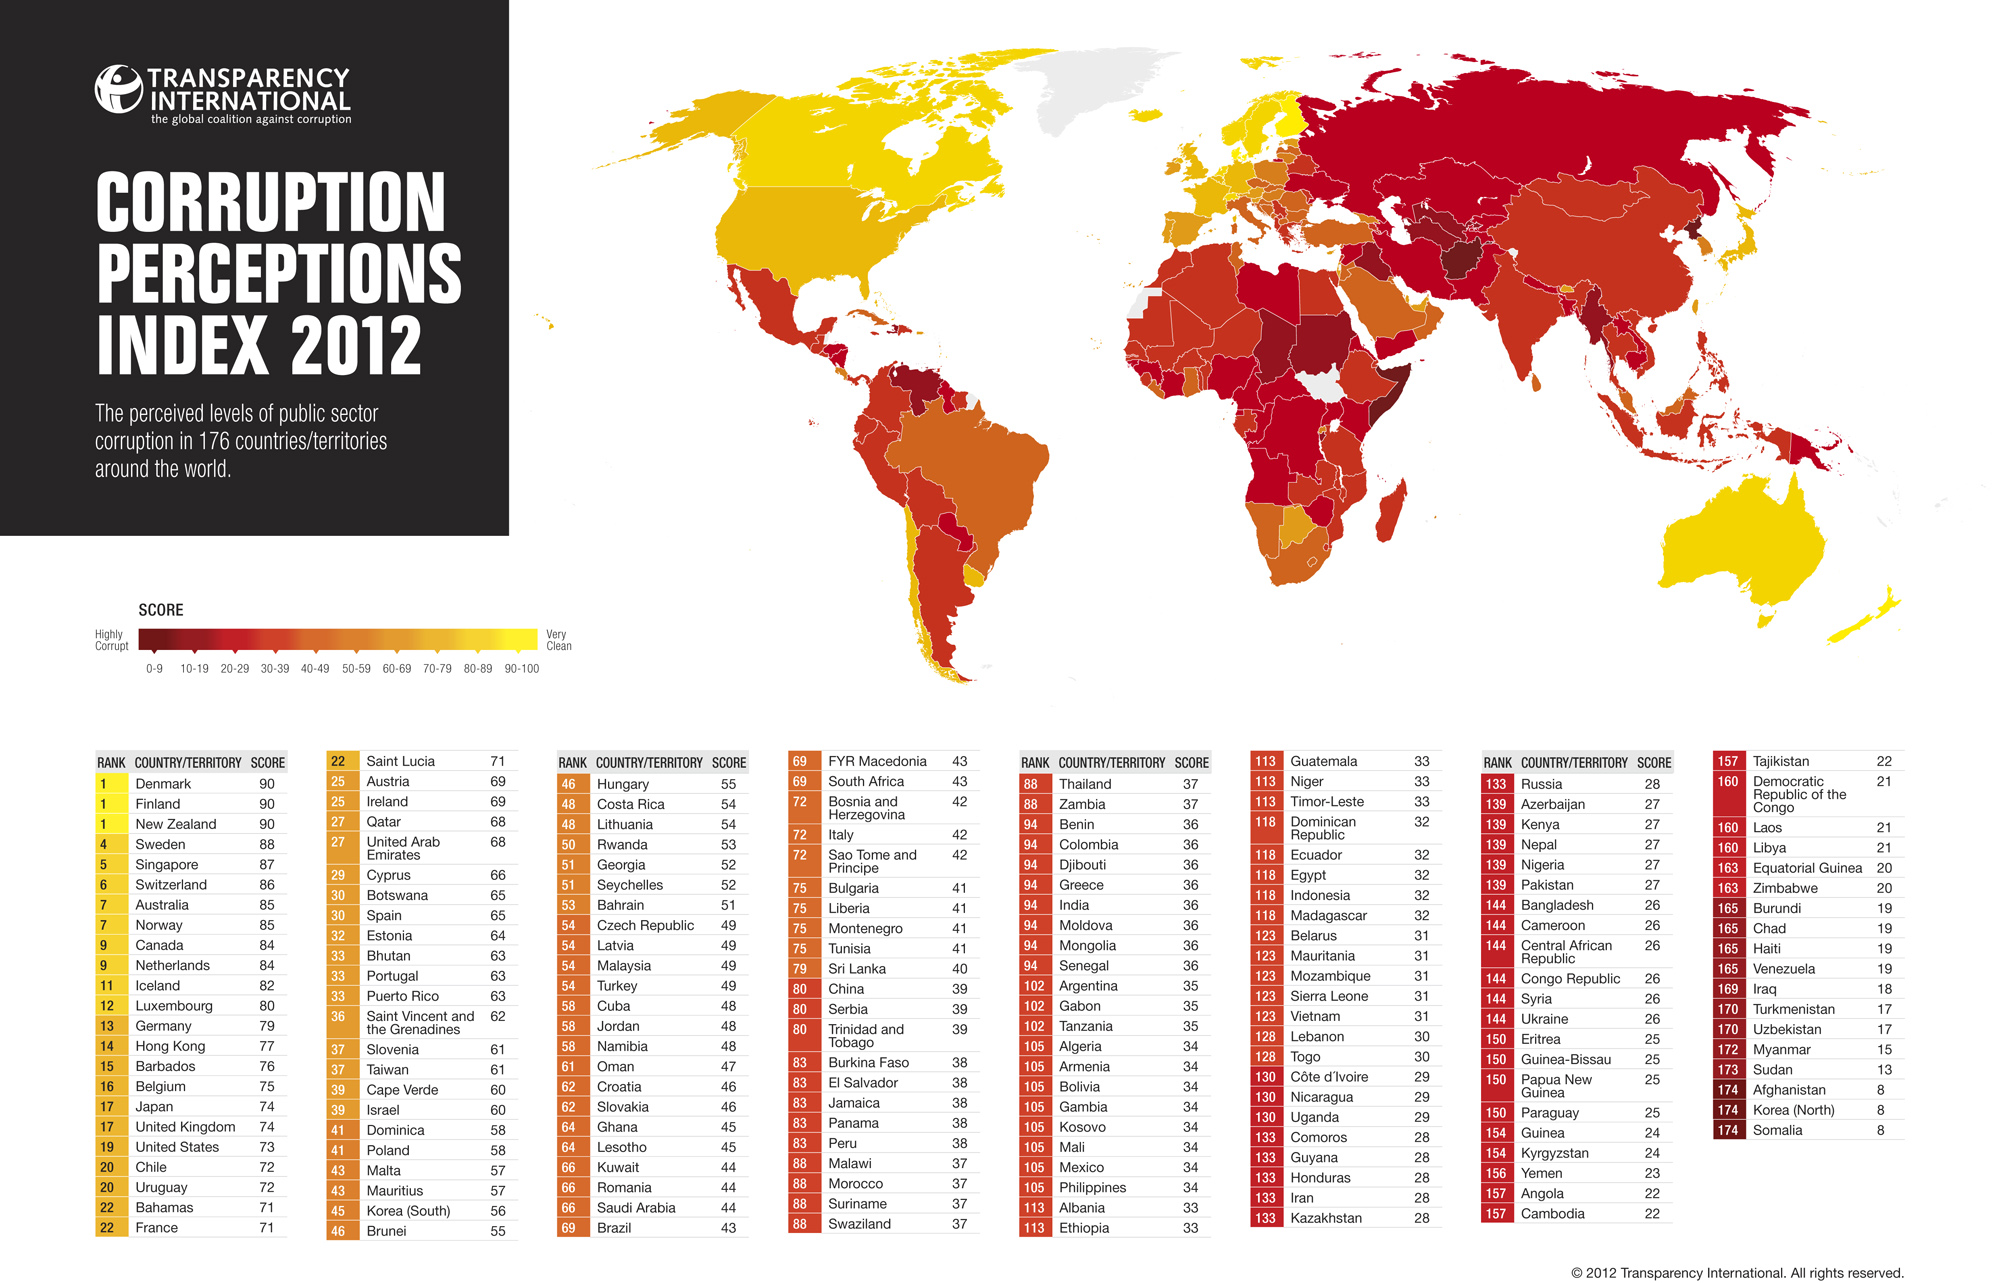 transparency international georgia 51st in 2012